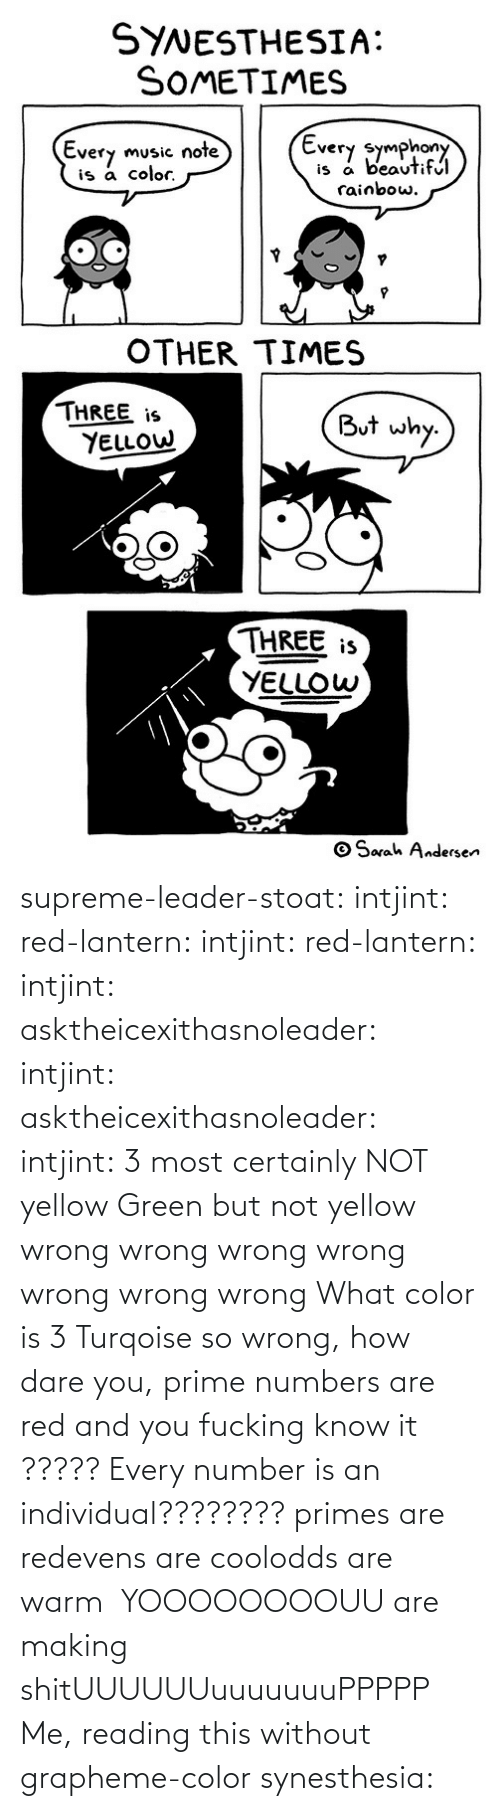 warm: supreme-leader-stoat: intjint:  red-lantern:  intjint:  red-lantern:  intjint:  asktheicexithasnoleader:  intjint:   asktheicexithasnoleader:  intjint:  3 most certainly NOT yellow   Green but not yellow  wrong wrong wrong wrong wrong wrong wrong    What color is 3  Turqoise  so wrong, how dare you, prime numbers are red and you fucking know it   ????? Every number is an individual????????  primes are redevens are coolodds are warm   YOOOOOOOOUU are making shitUUUUUUuuuuuuuPPPPP  Me, reading this without grapheme-color synesthesia: